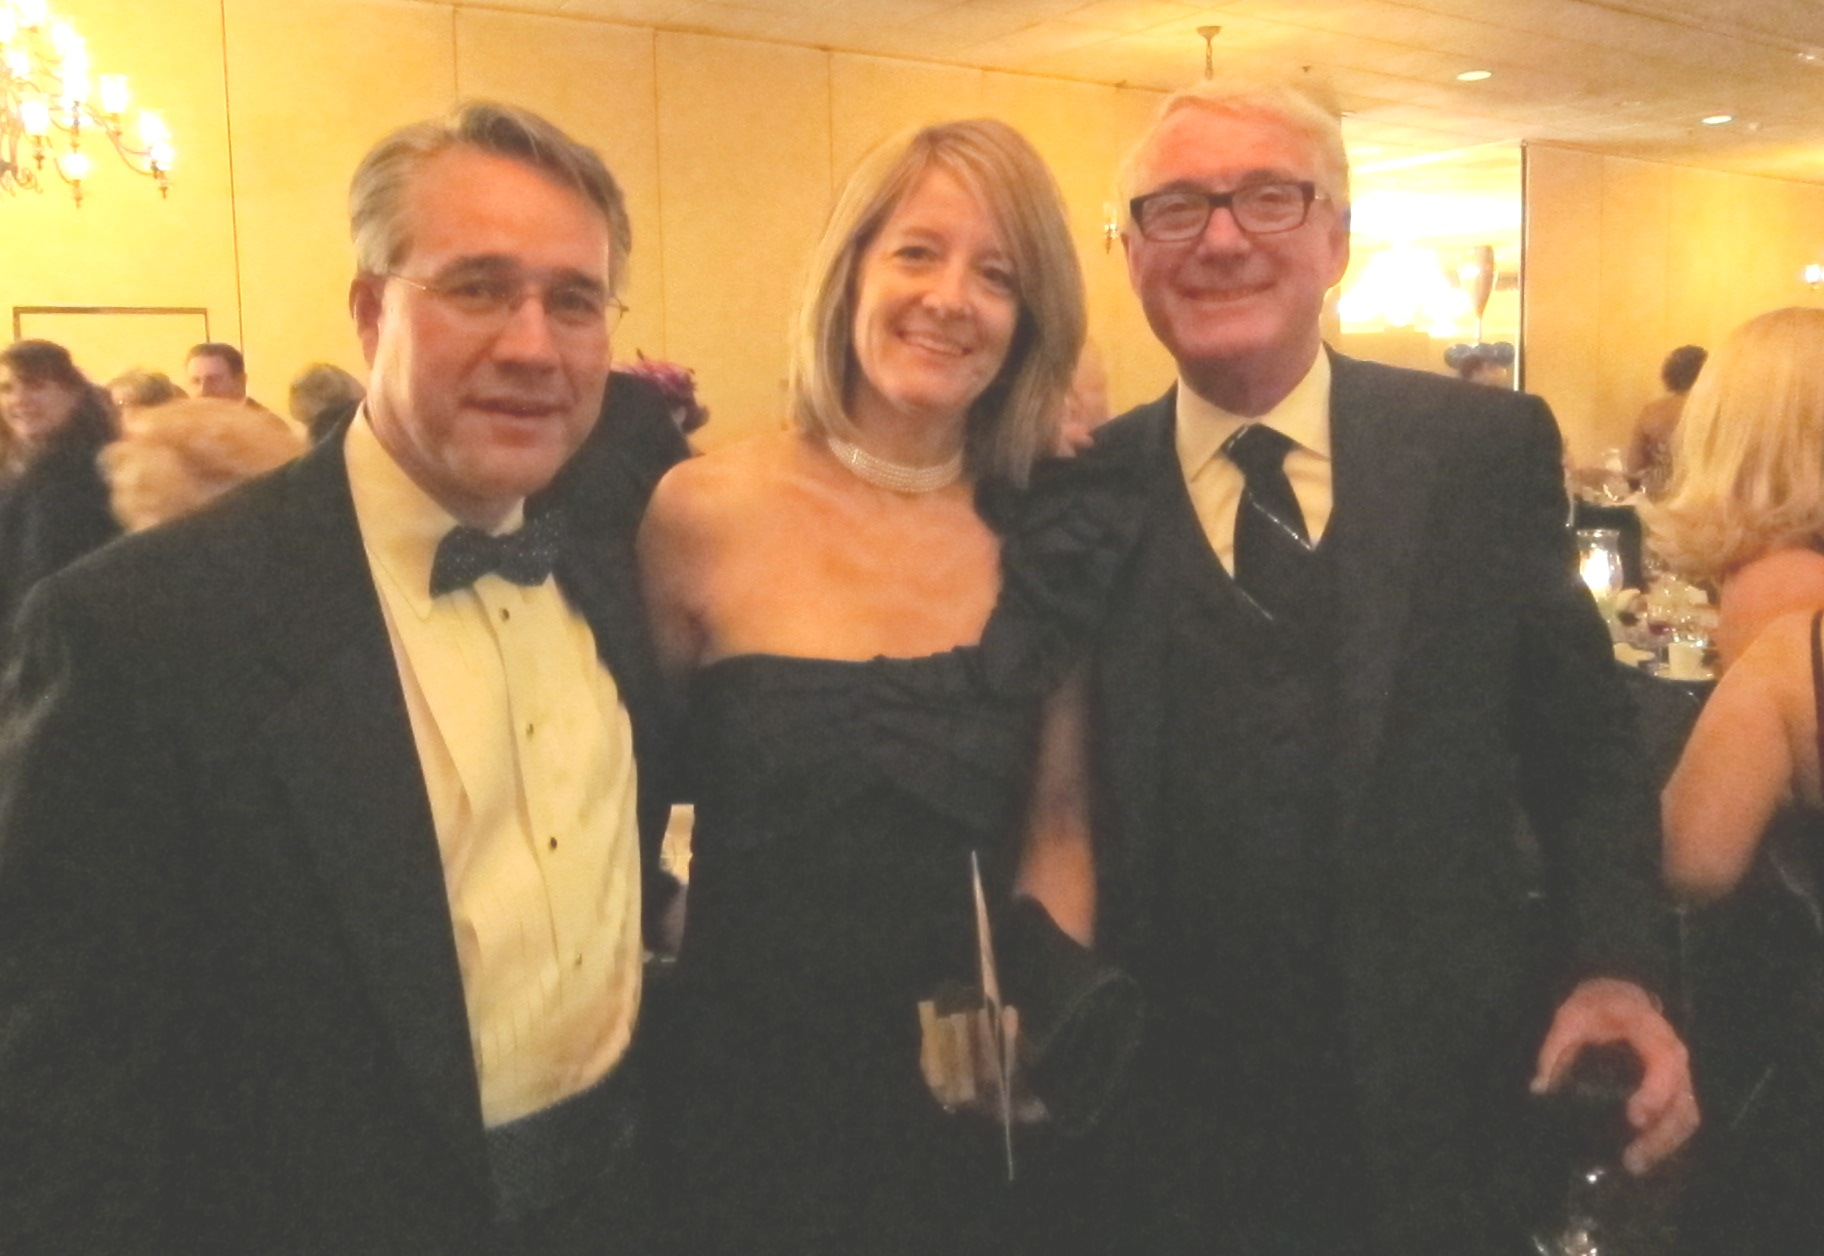 Mission of Mercy Gala Raises $65,000 to Support Mobile Health Clinics